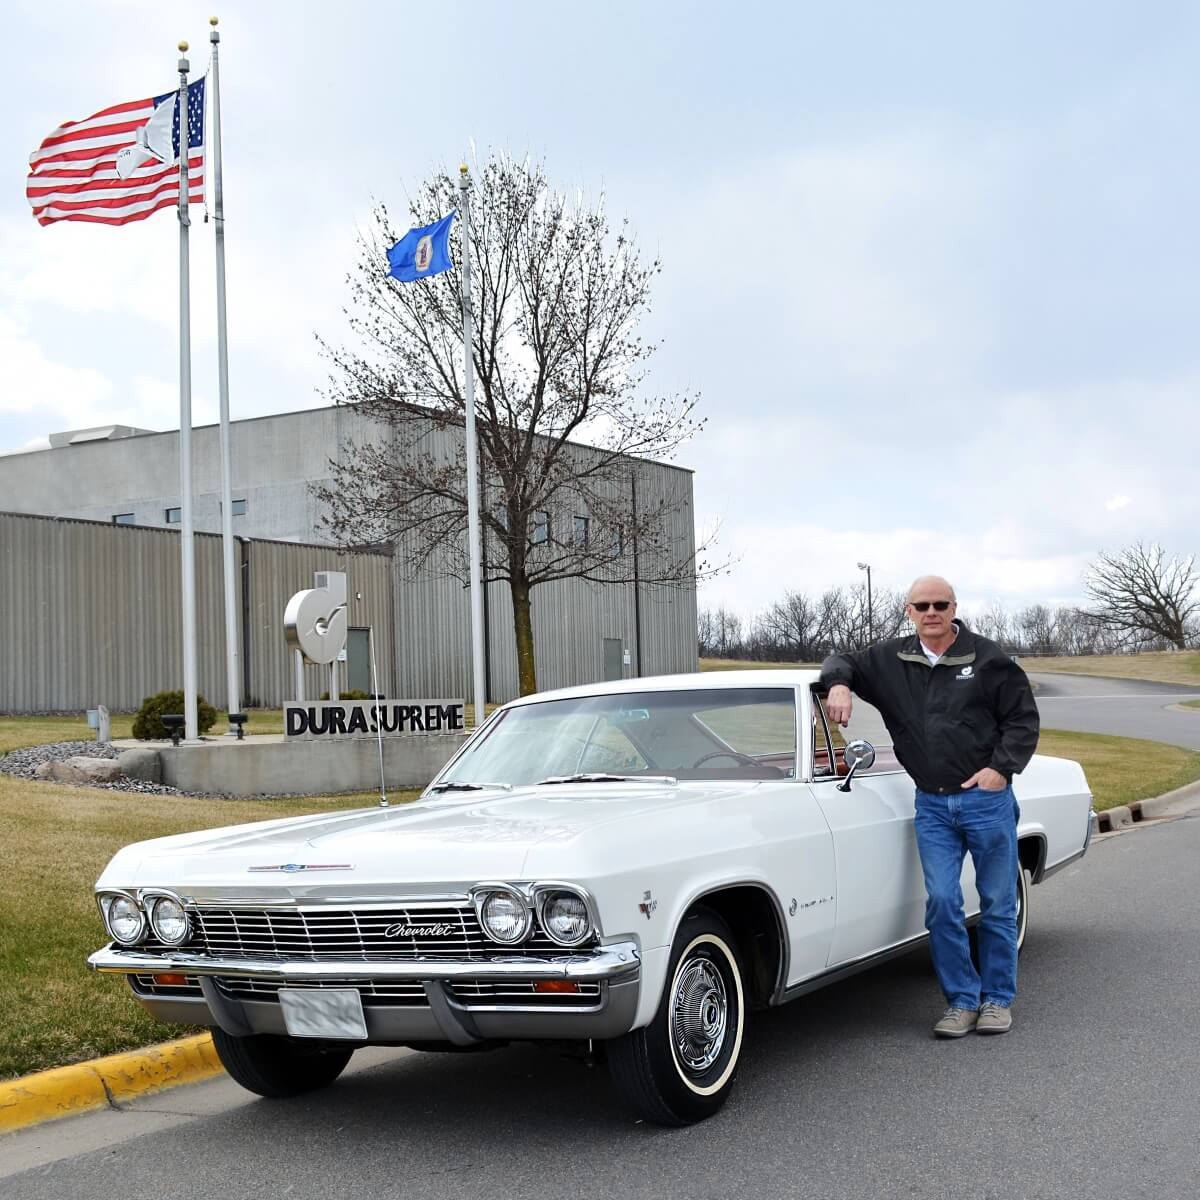 Merlyn's last day at Dura Supreme with the same car he drove to work on his first day of work in 1968.